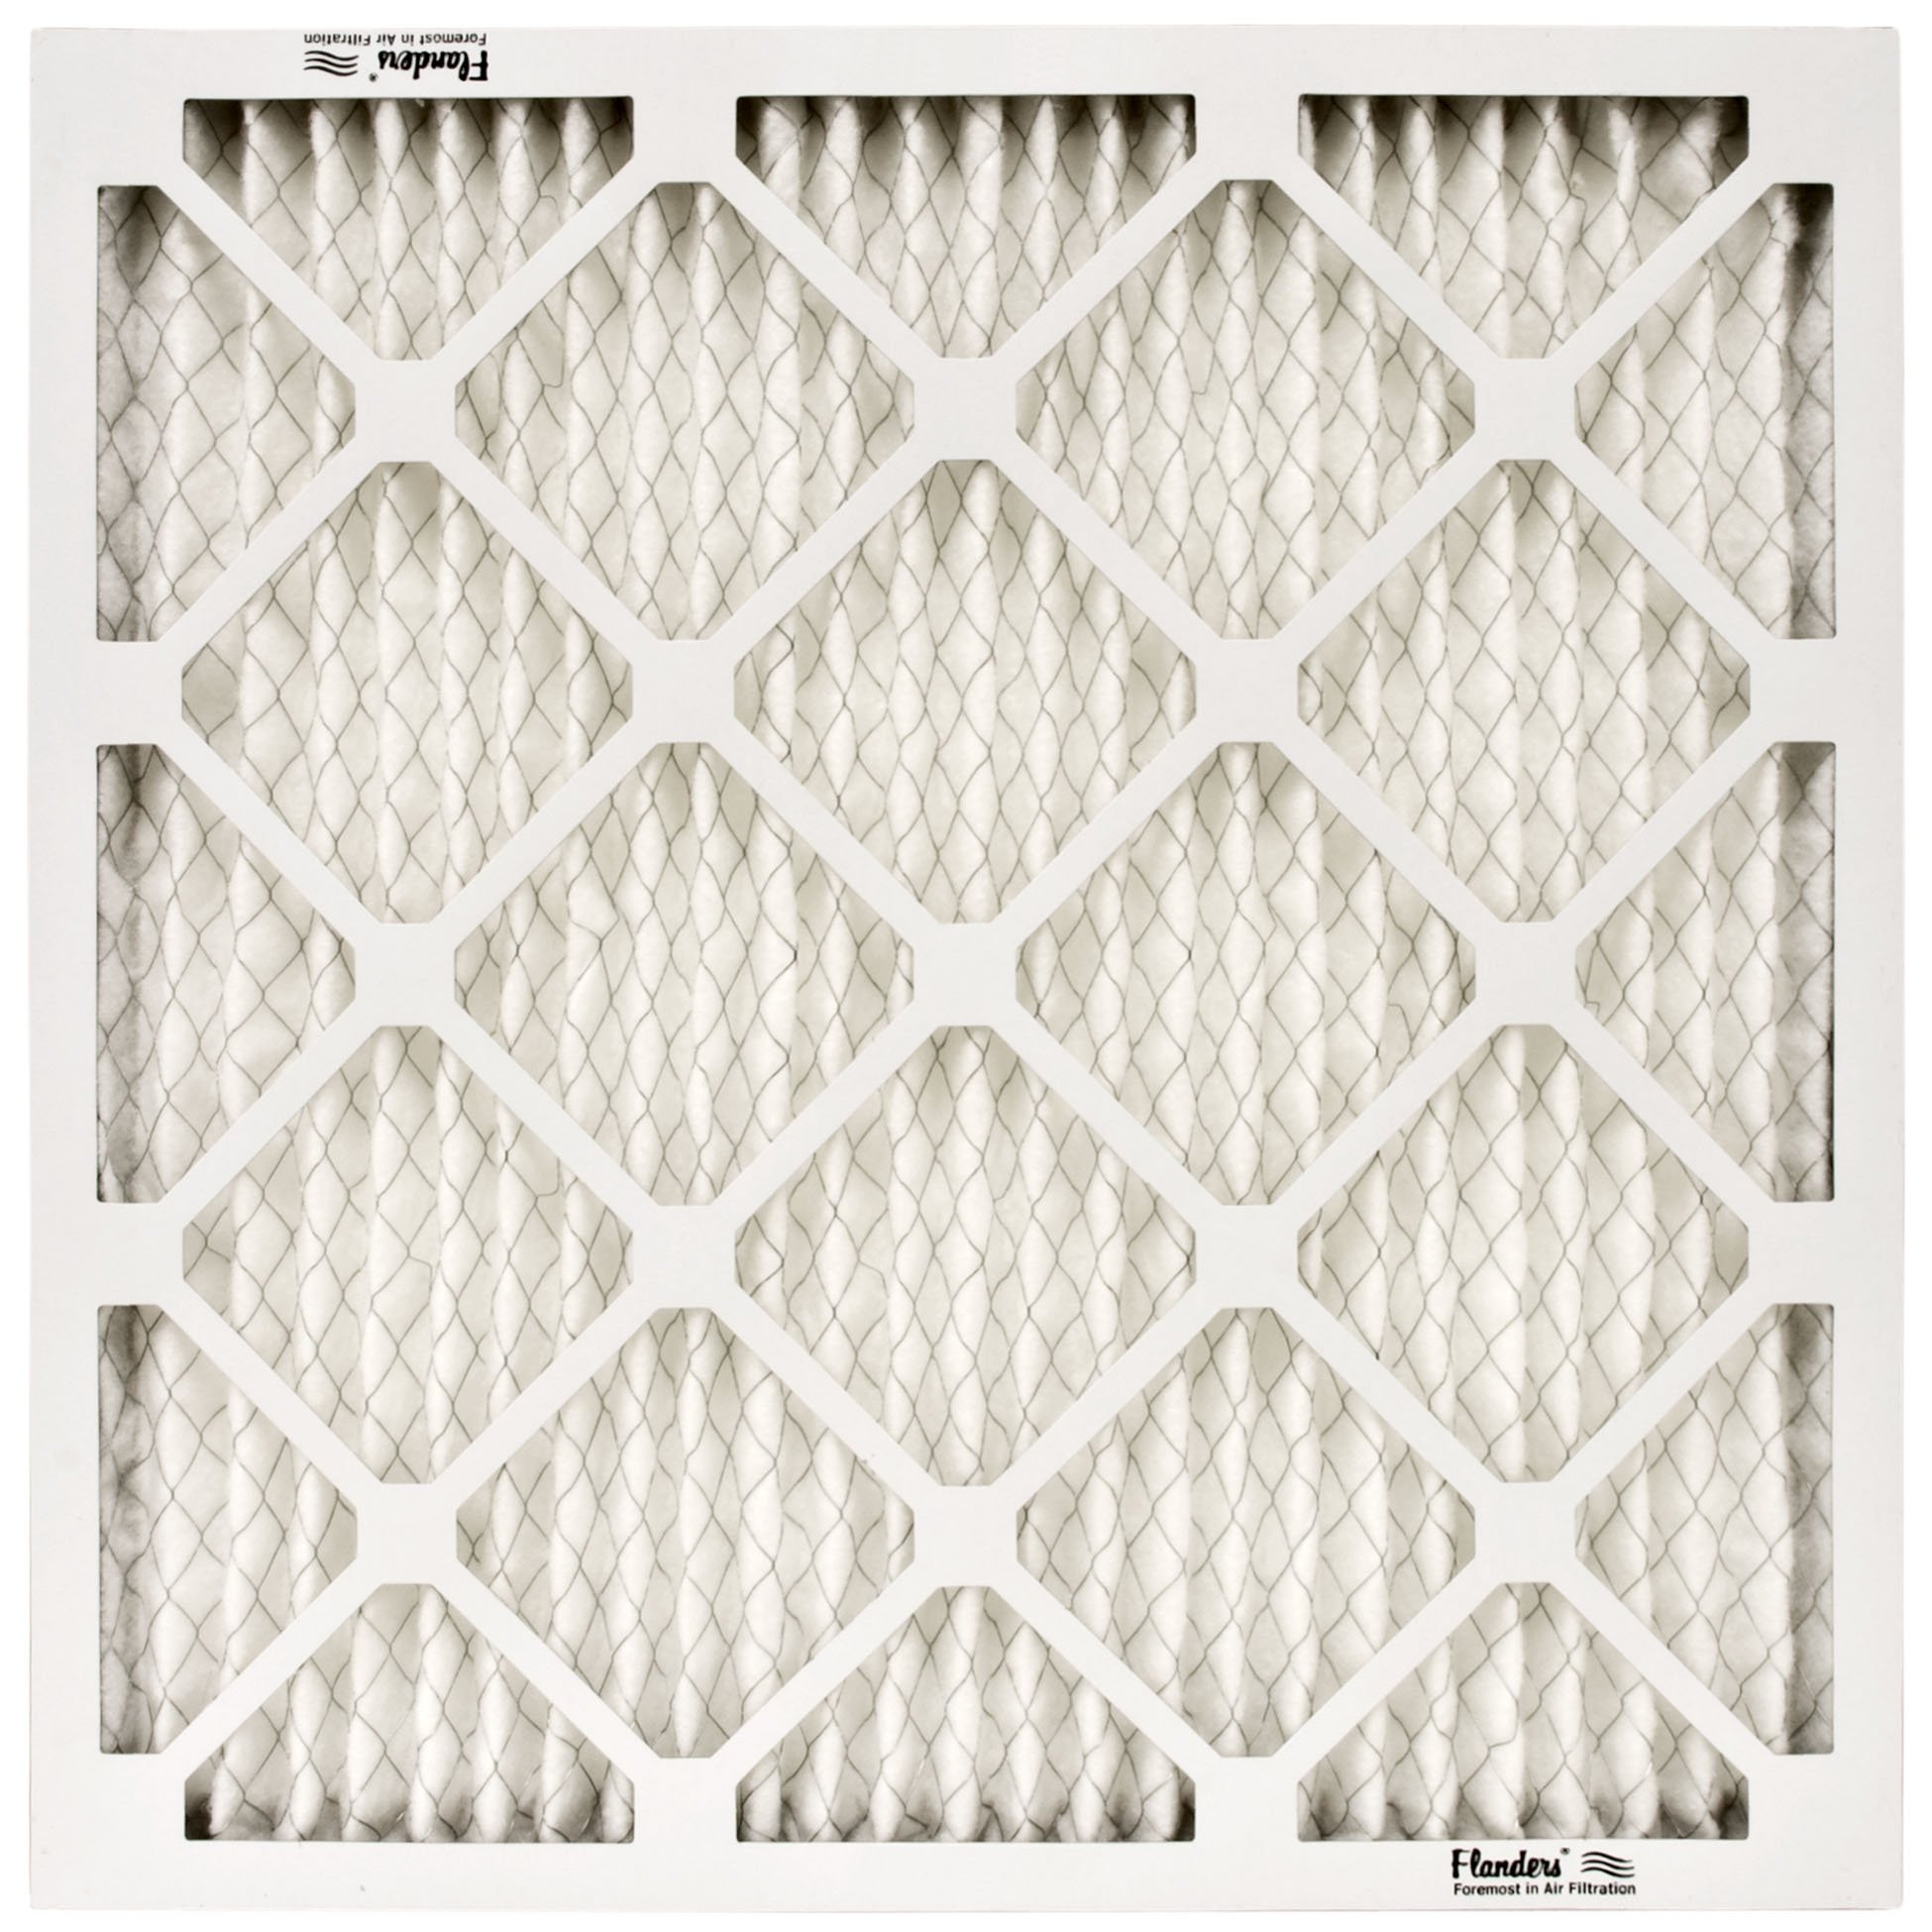 NaturalAire Elite Air Filter, MERV 13, 20 x 30 x 1-Inch, 12-Pack